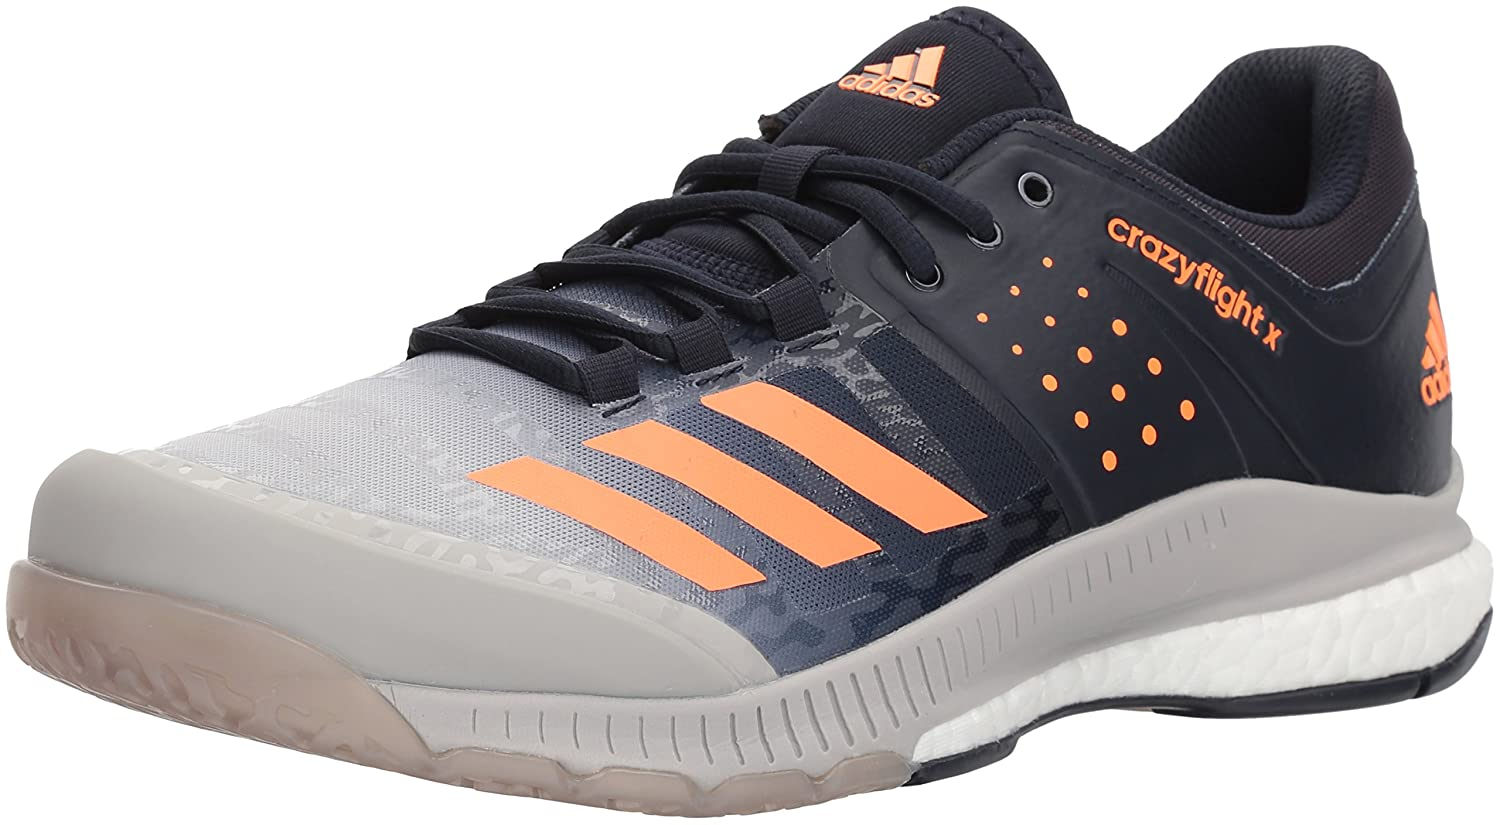 adidas Men's Crazyflight X Volleyball Shoe